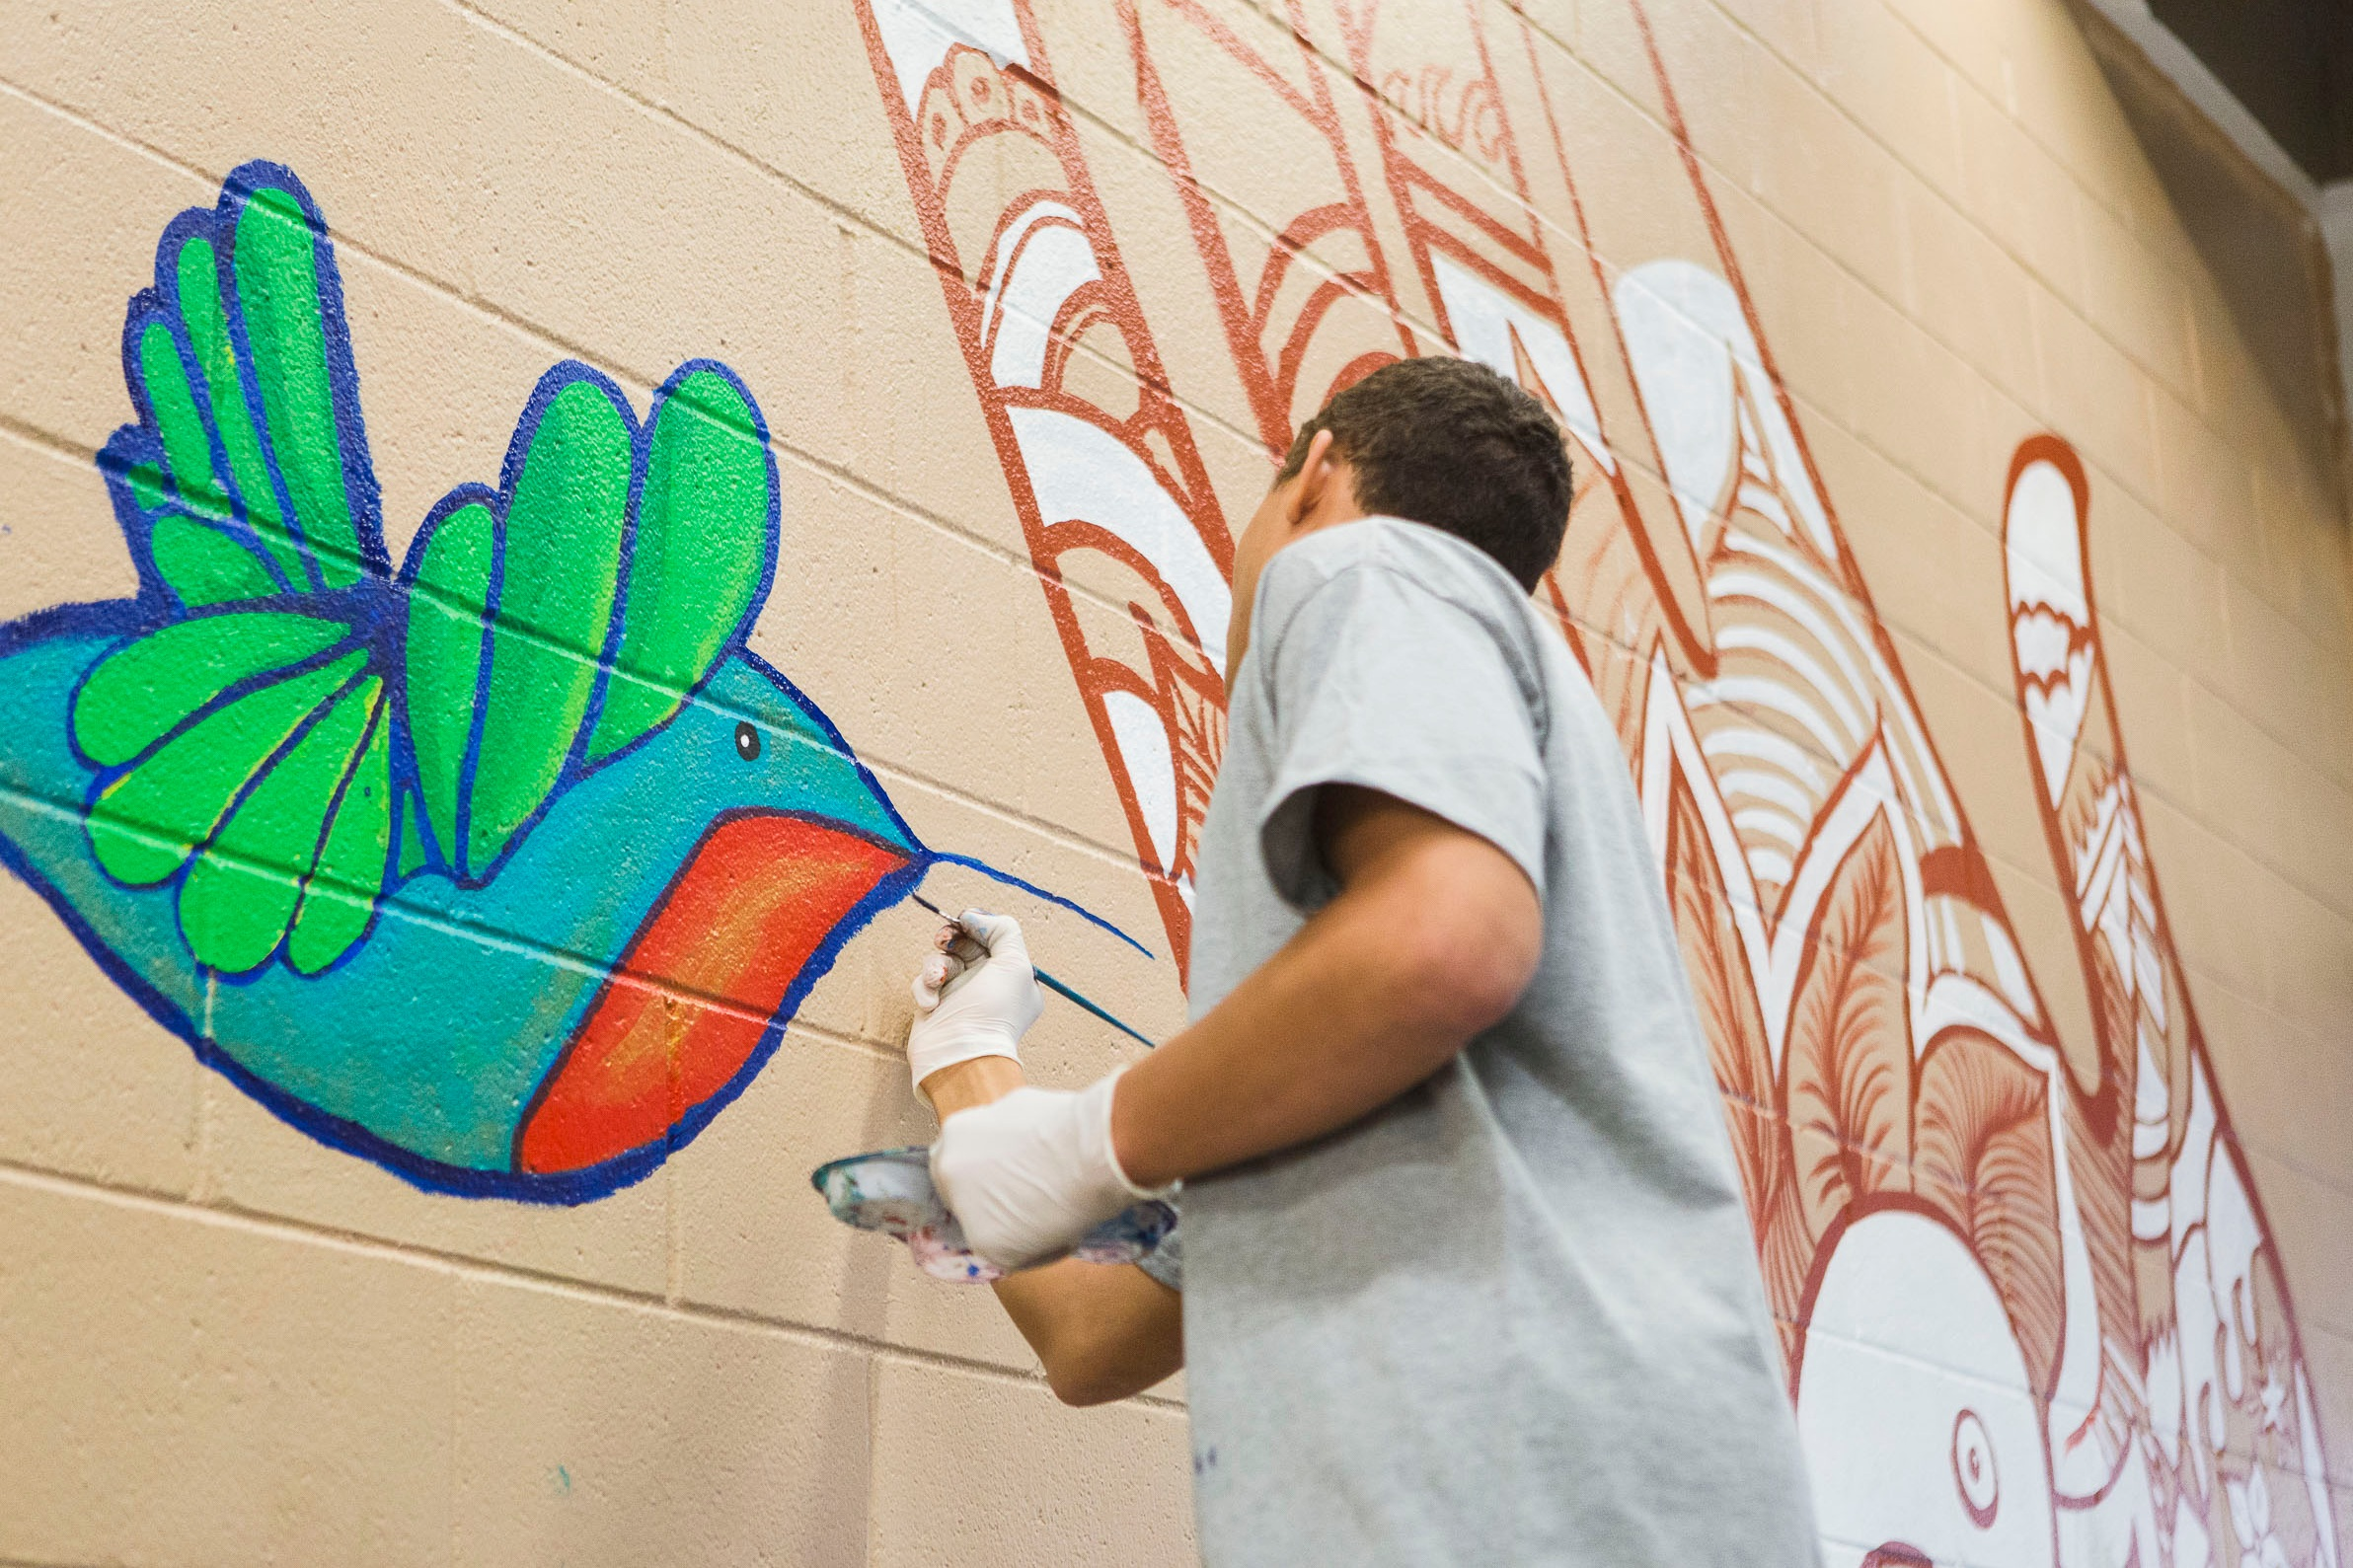 Armory Center for the Arts mural at Barry J. Nidorf -- youth painting, and final mural dedication with Probation Chief Terri McDonald.